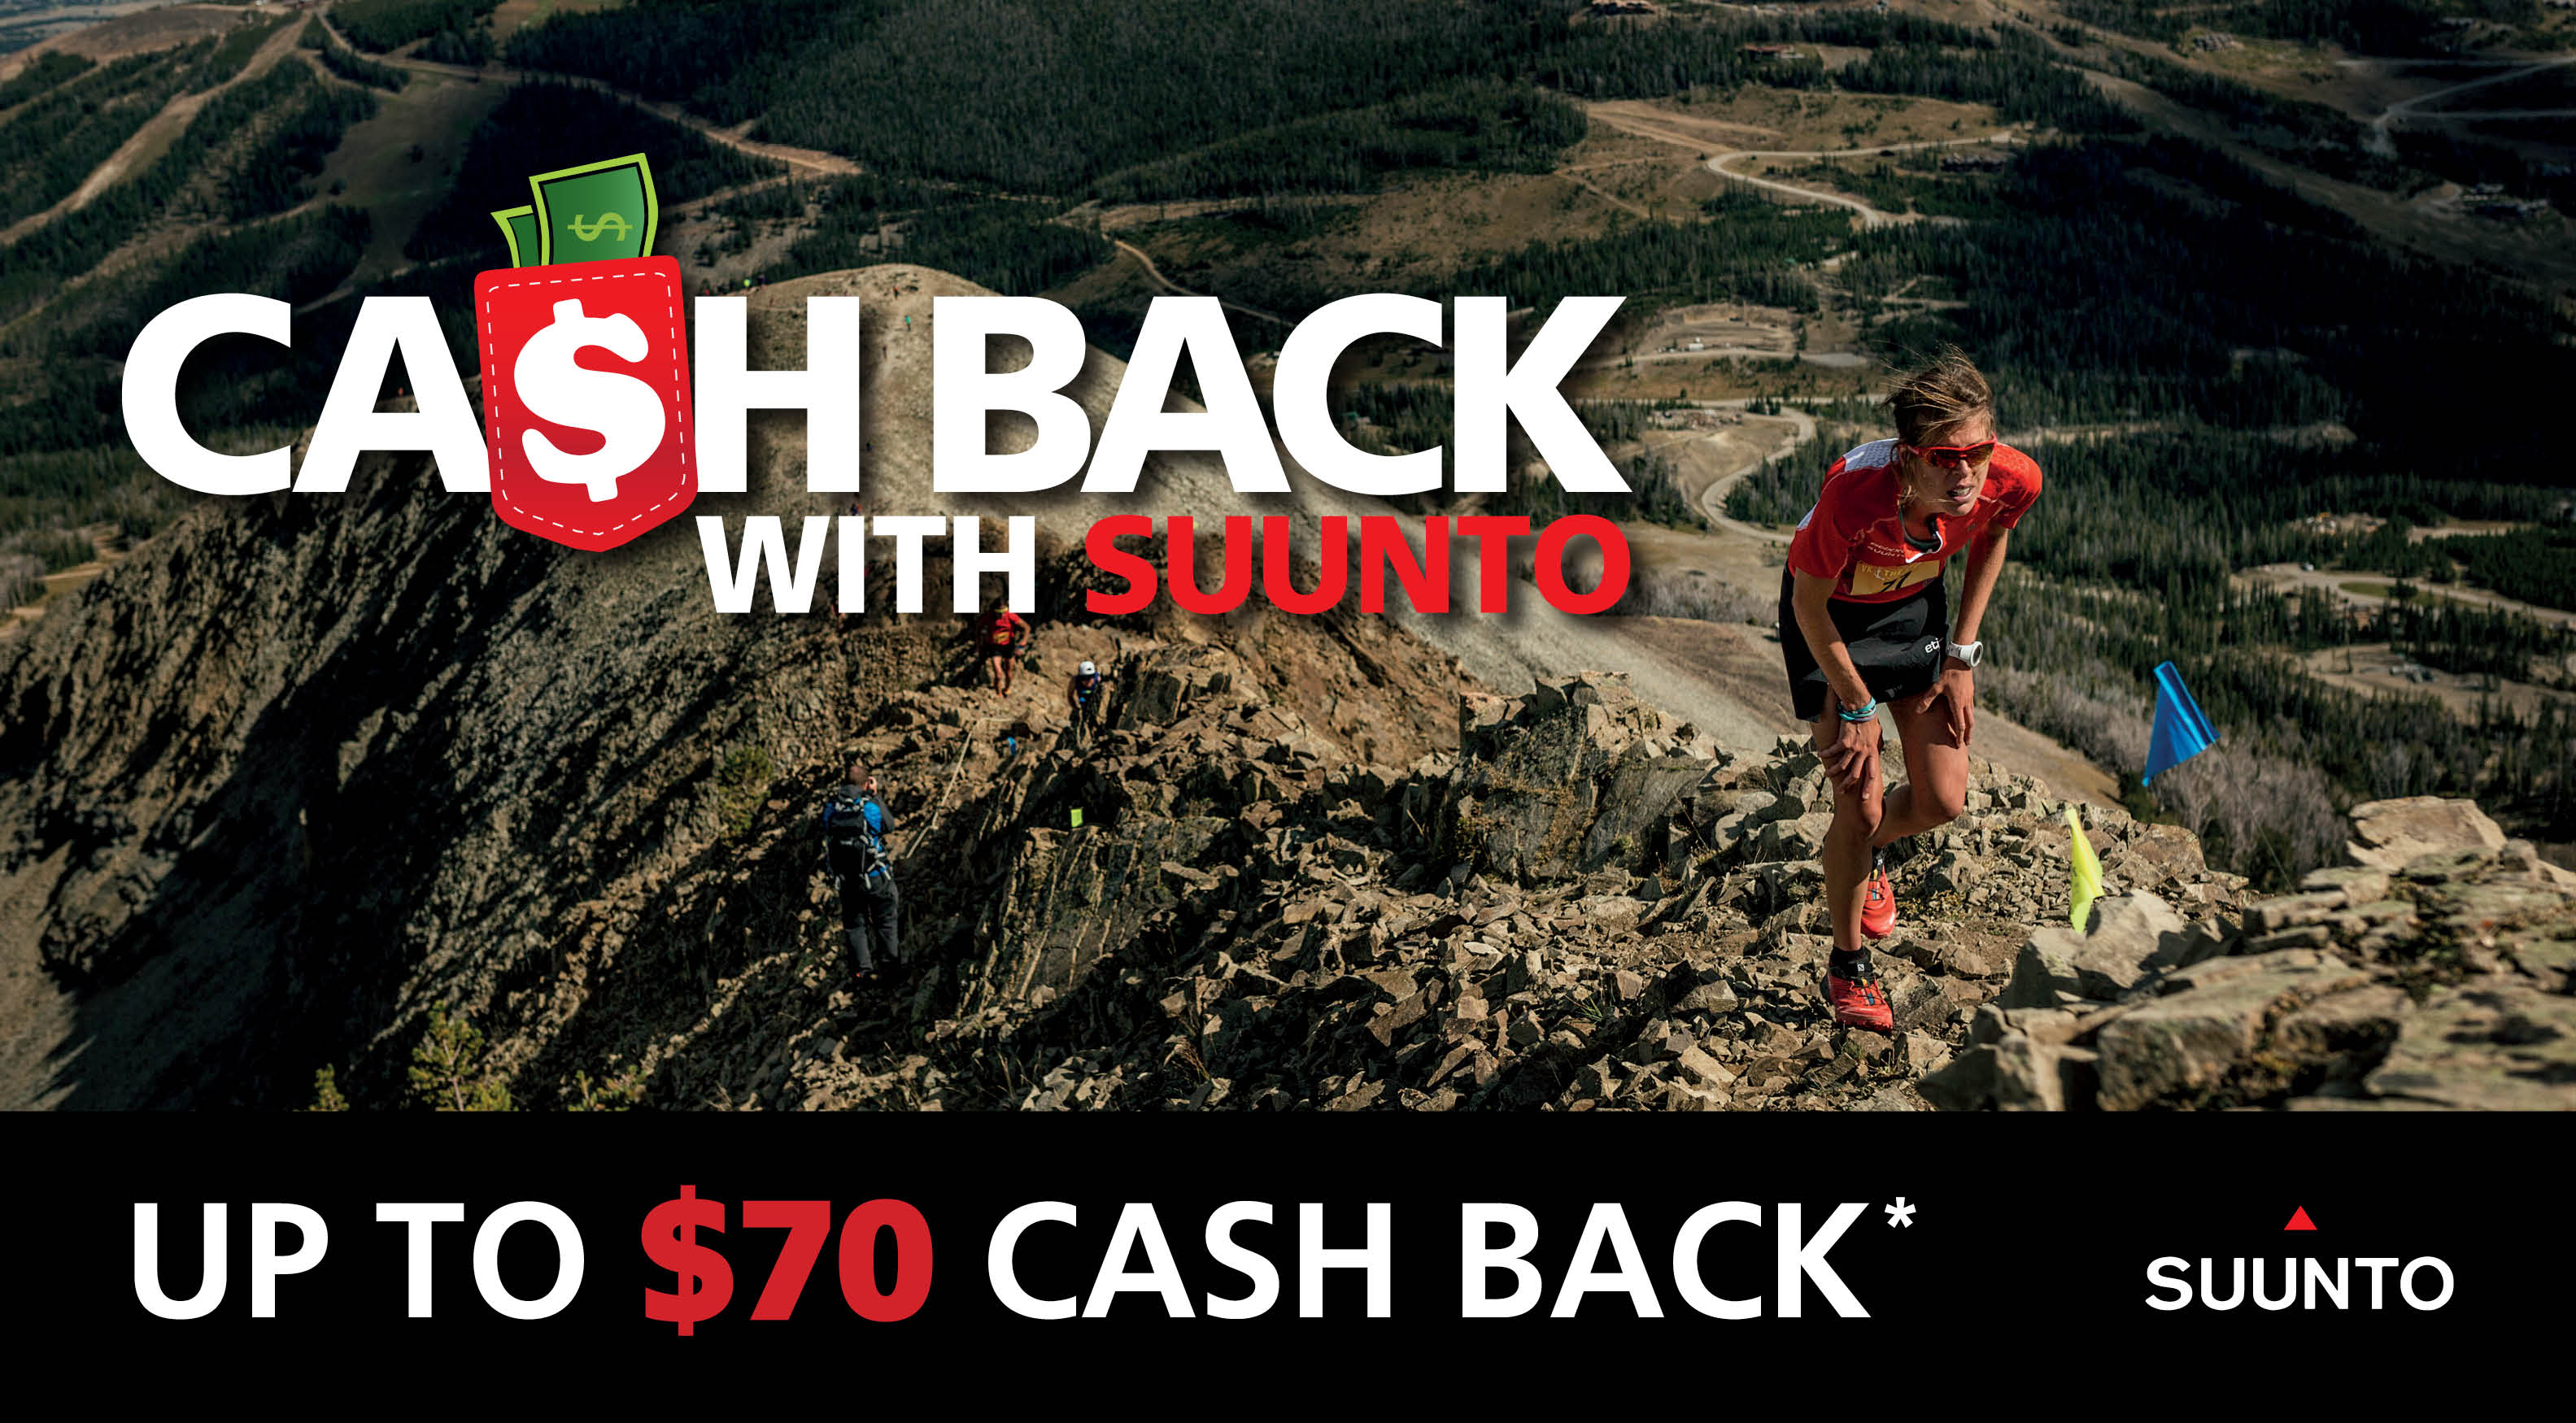 Cash back with suunto